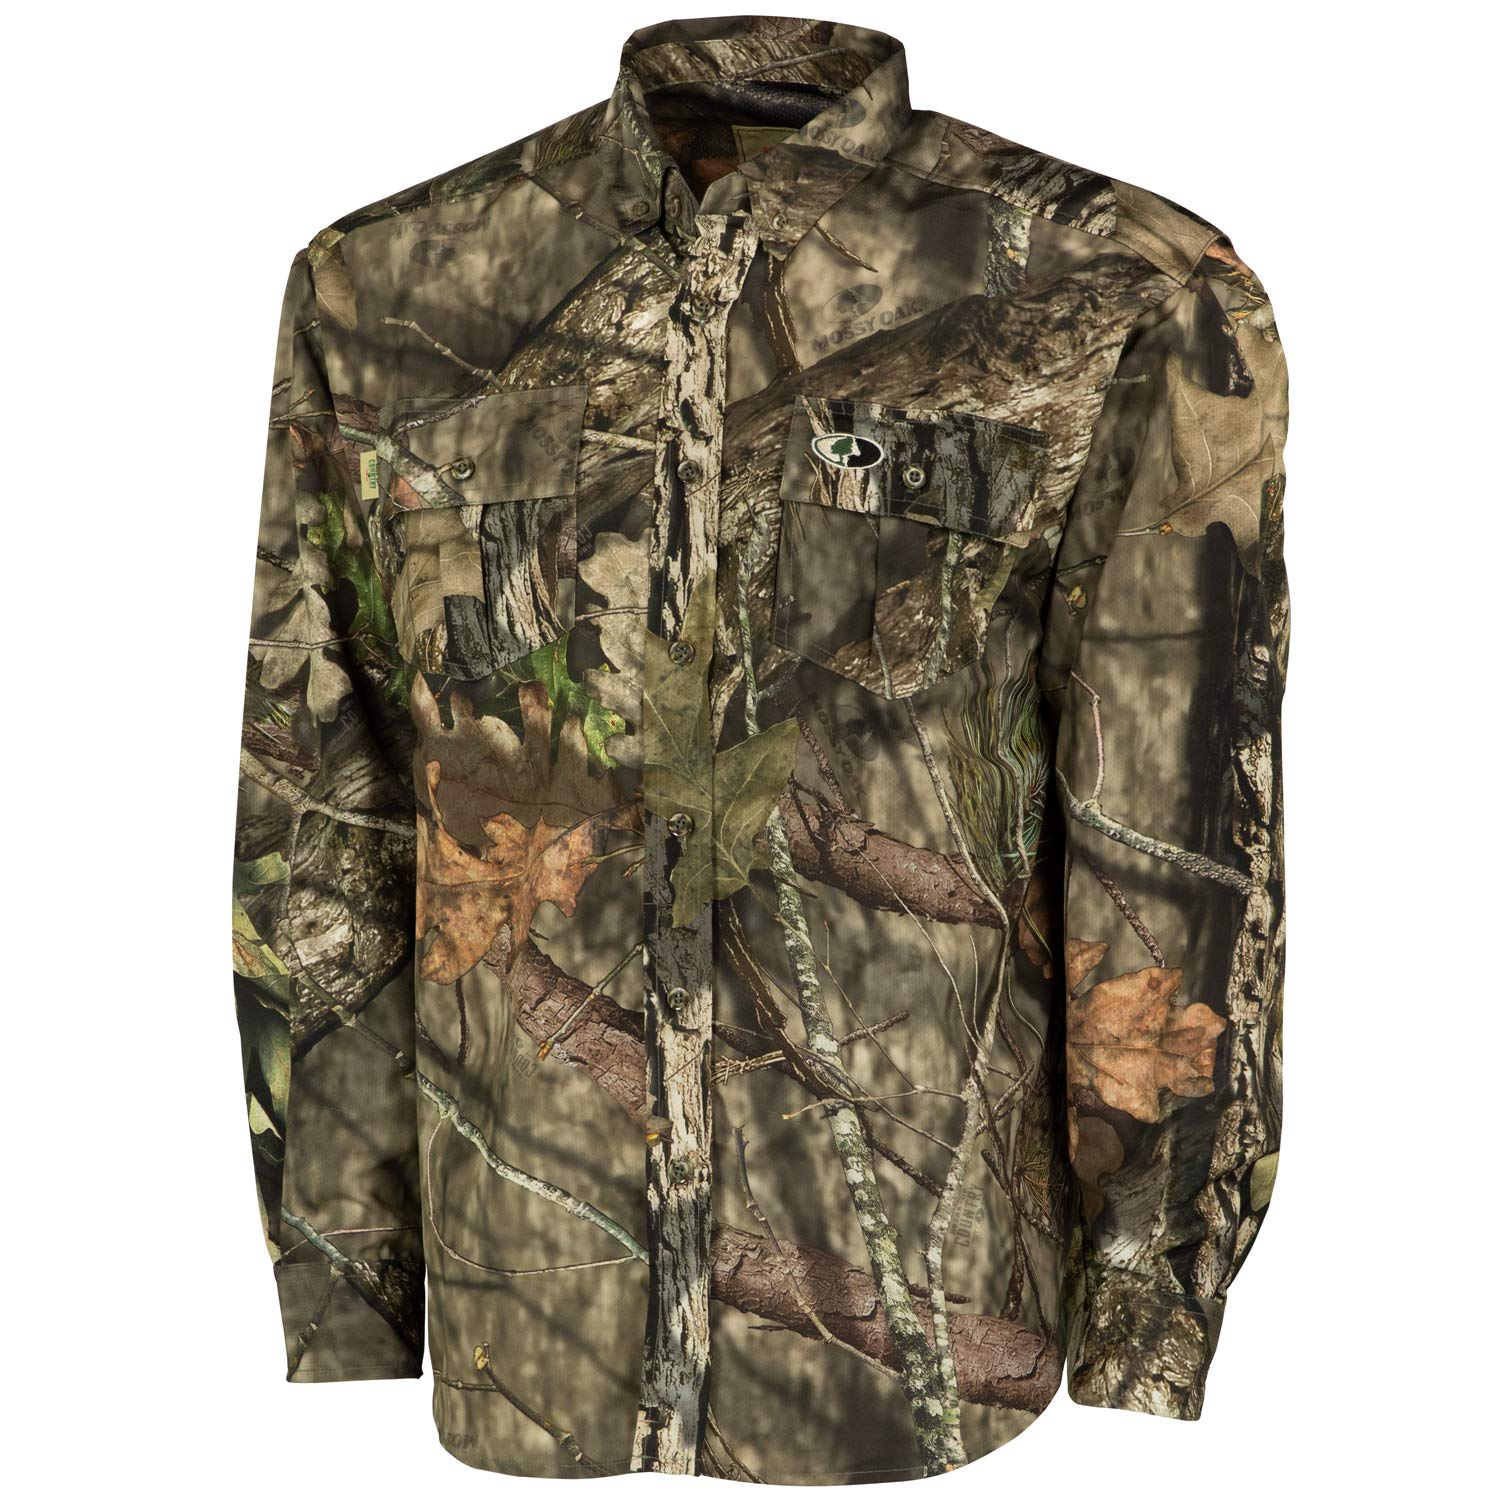 Mossy Oak Tibbee Camo Lightweight Hunting Shirts for Men Long Sleeve Camouflage Clothing by Mossy Oak